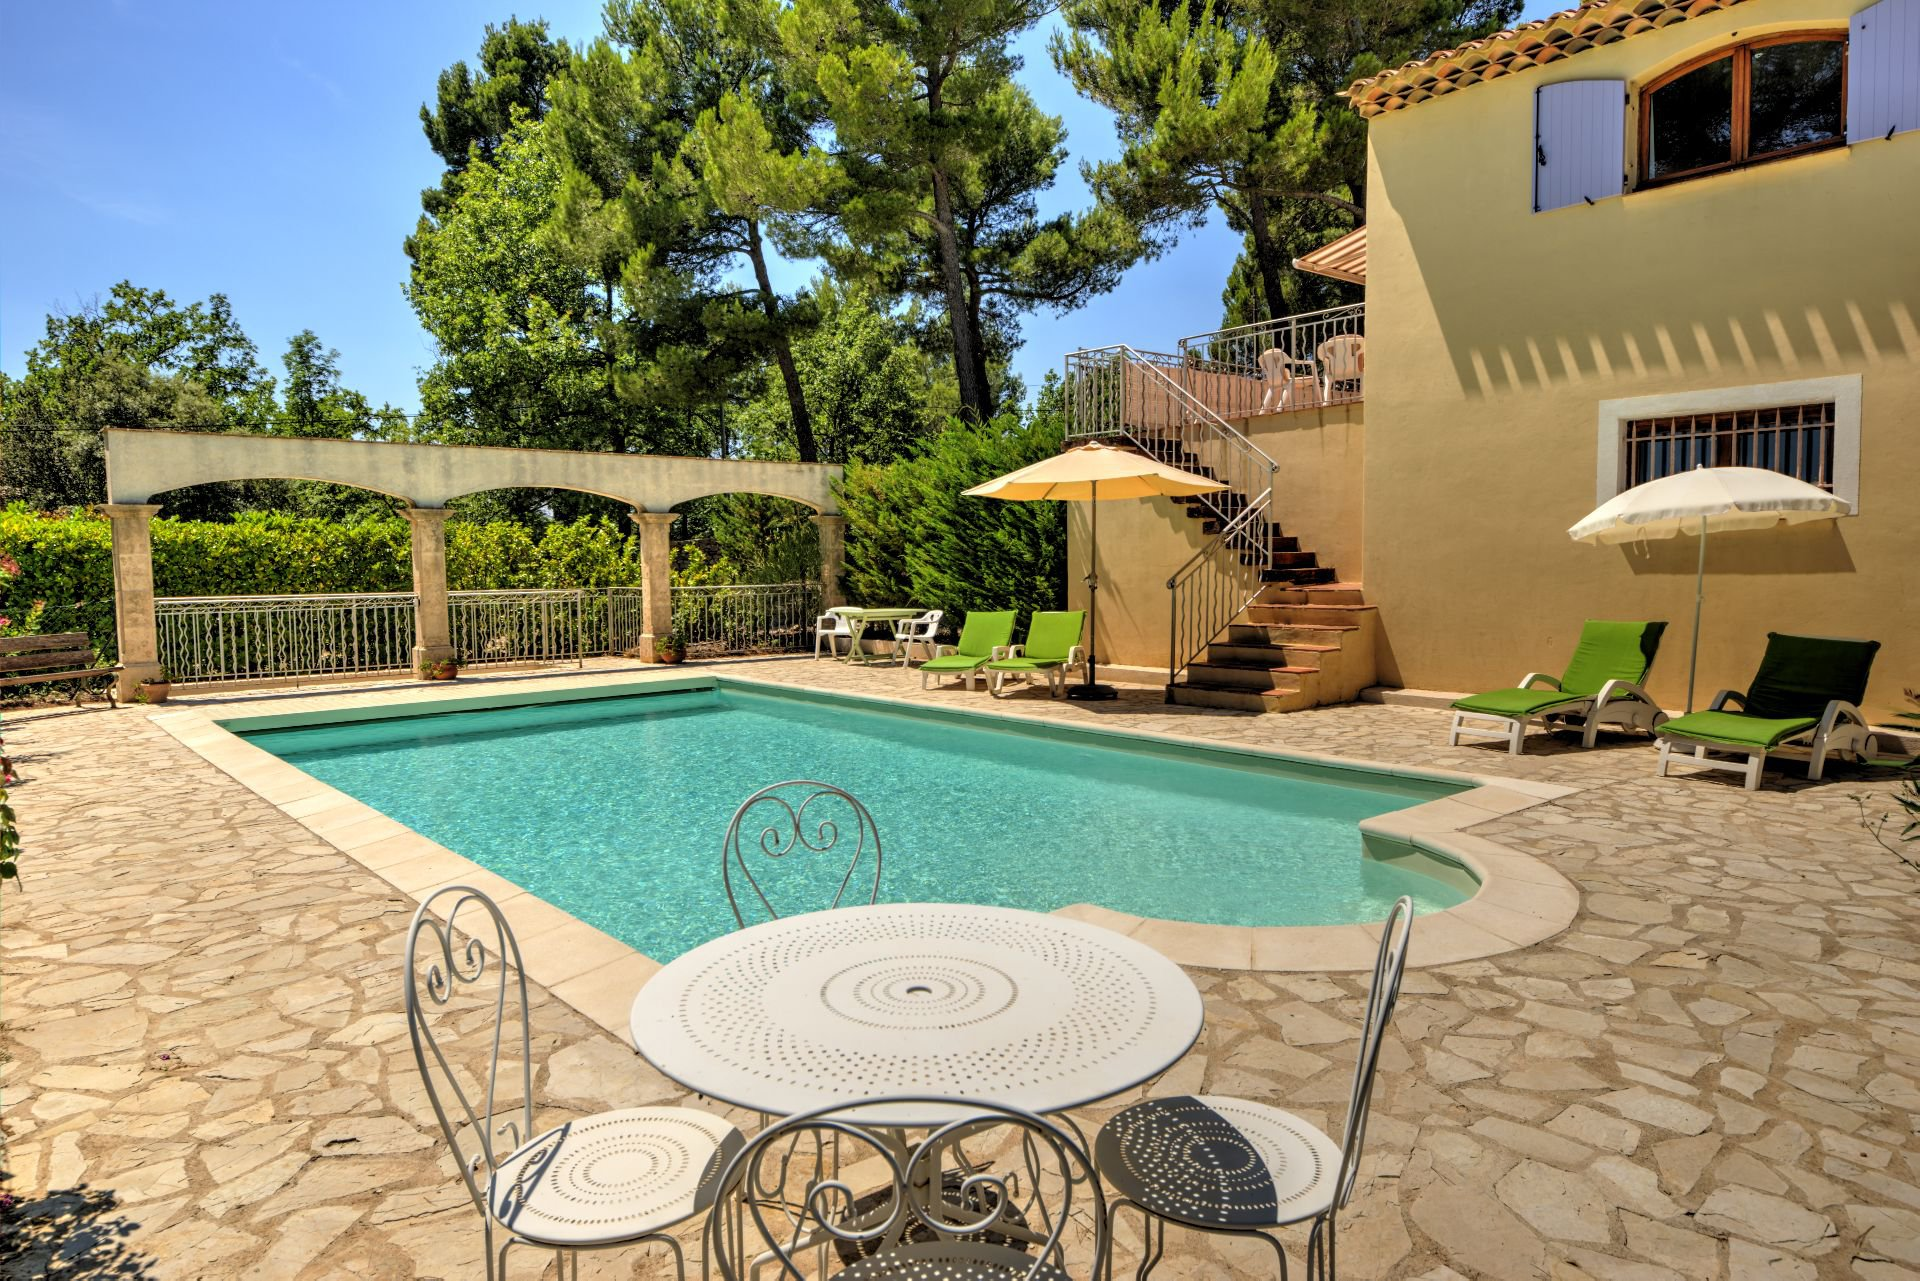 Pool View Beautiful villa of 180 sqm, three bedrooms, swimming pool, on 4000 m² closed, Tourtour, Var, Provence